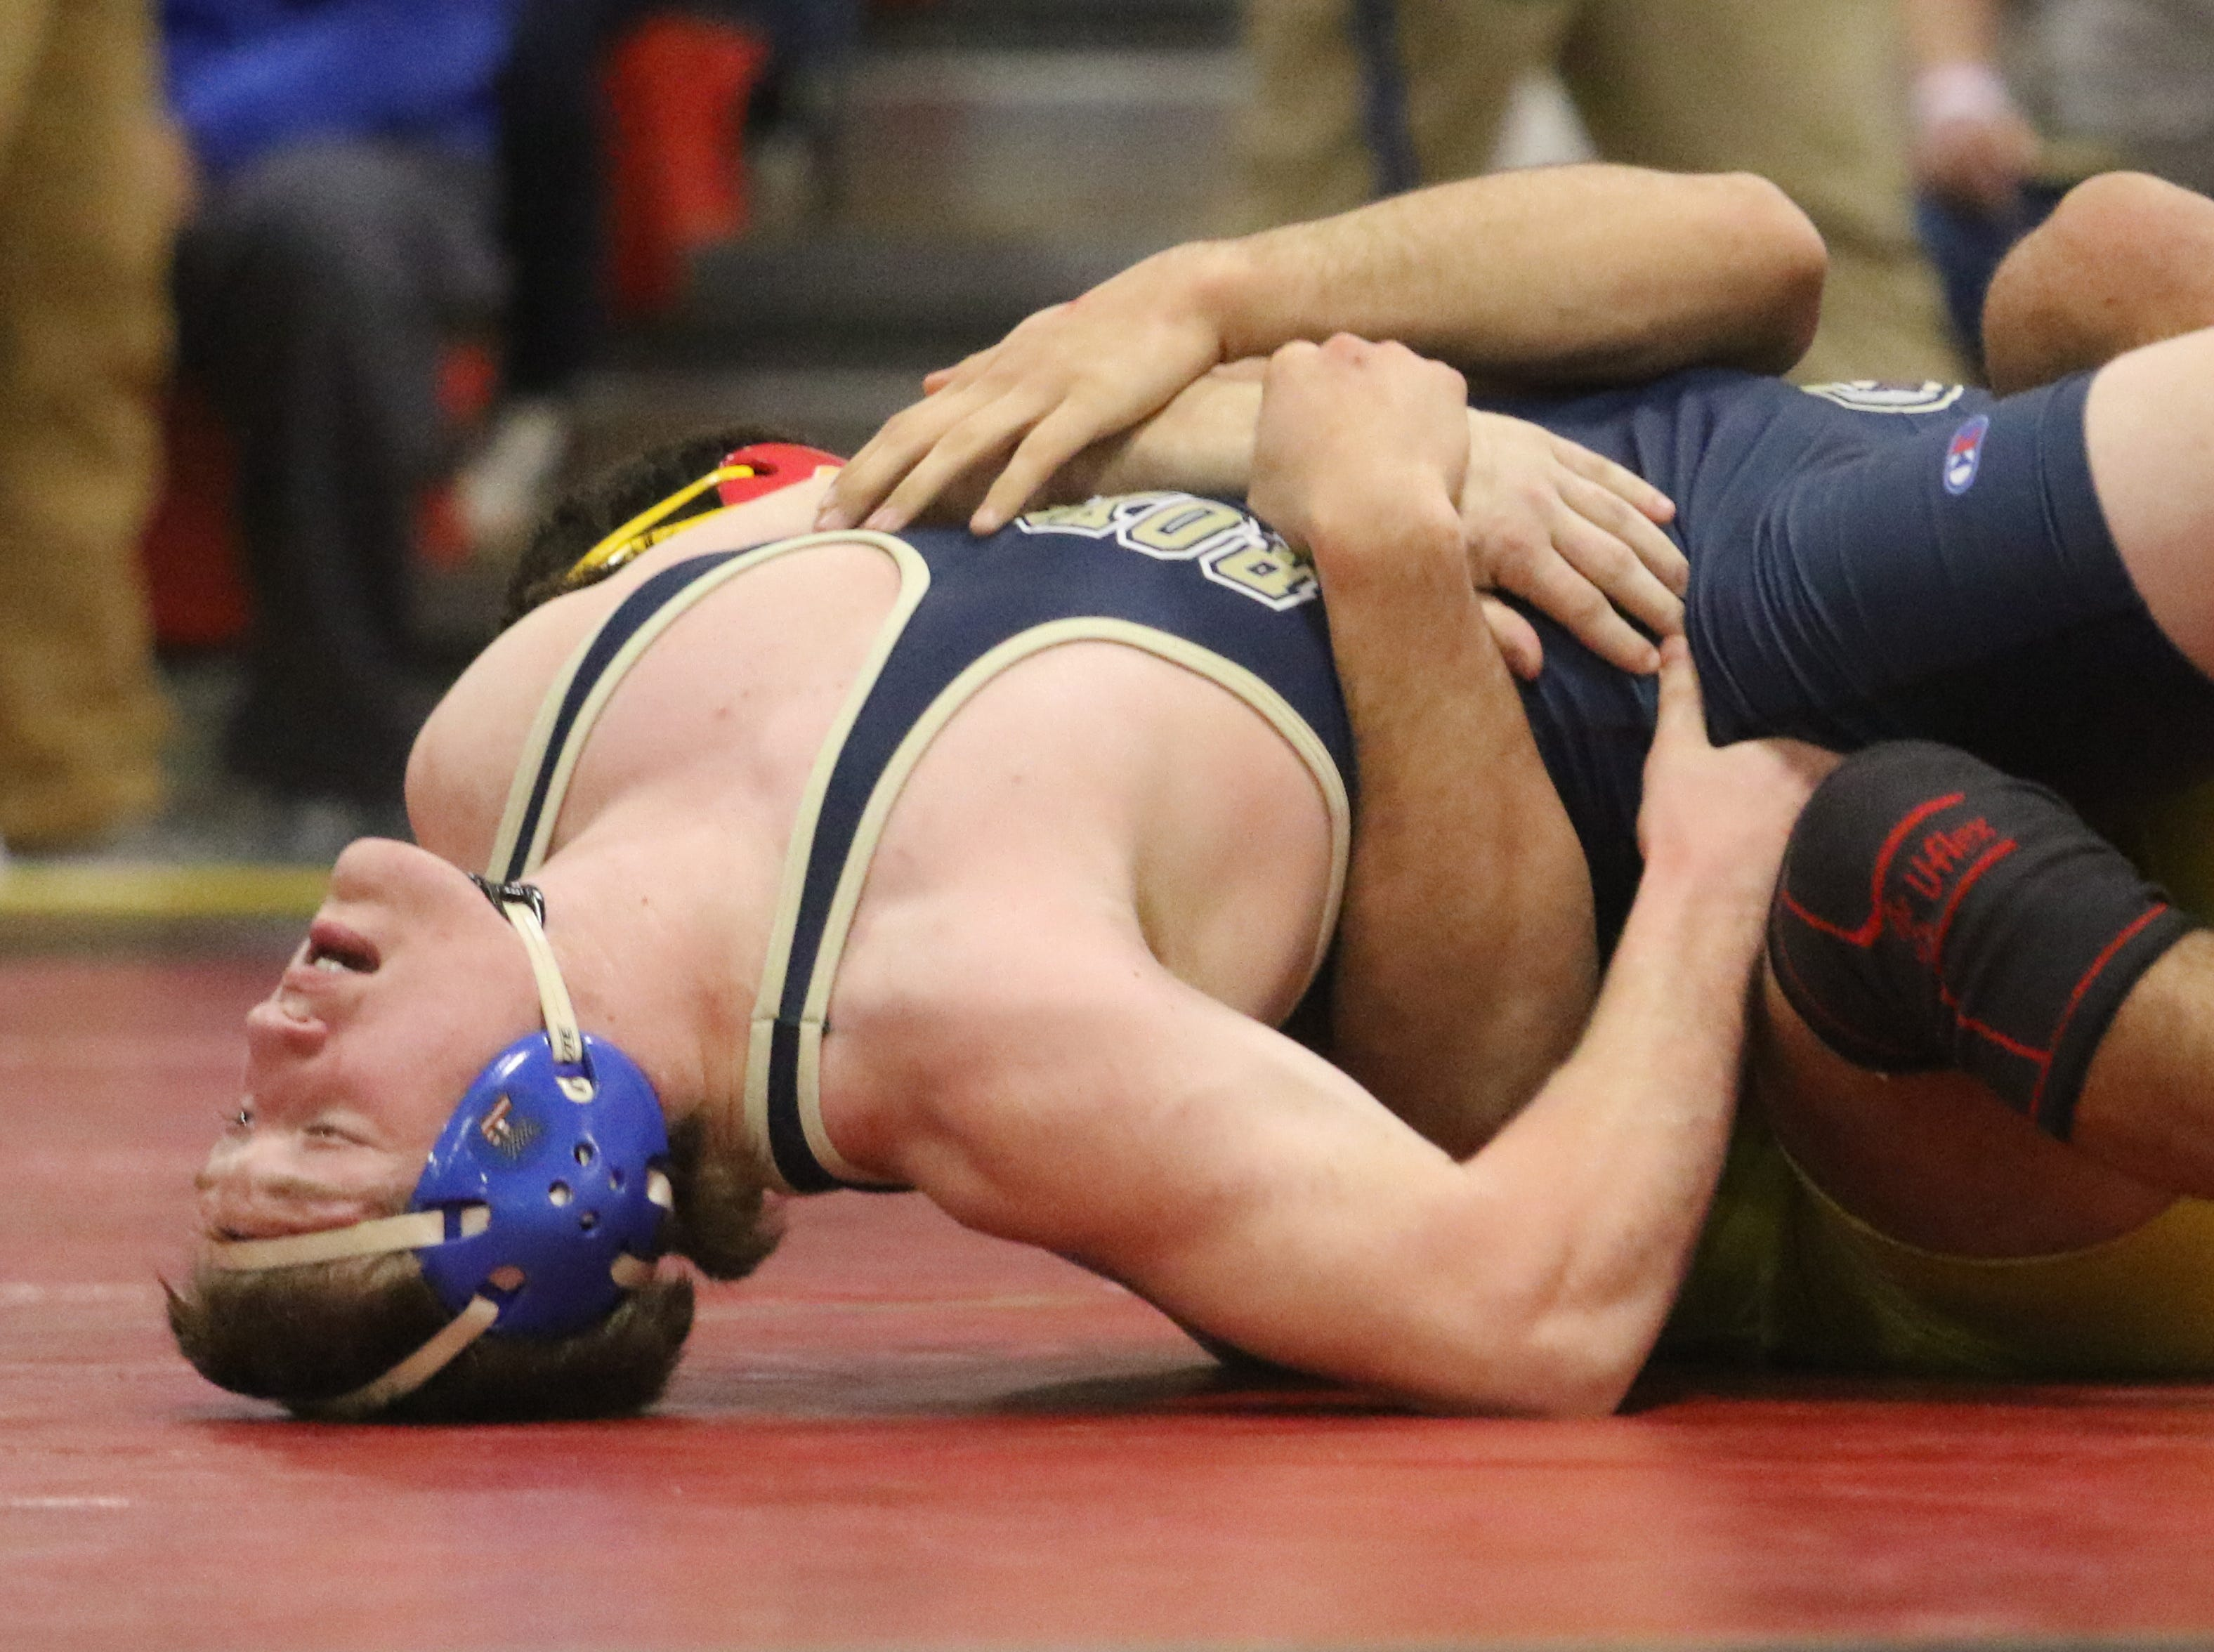 Jacob Cardenas of Bergen Catholic defeats Ben Temples of Roxbury in the 195 lb. semi final match at the Region 2 wrestling tournament at Mt. Olive HS on February 23, 2019.